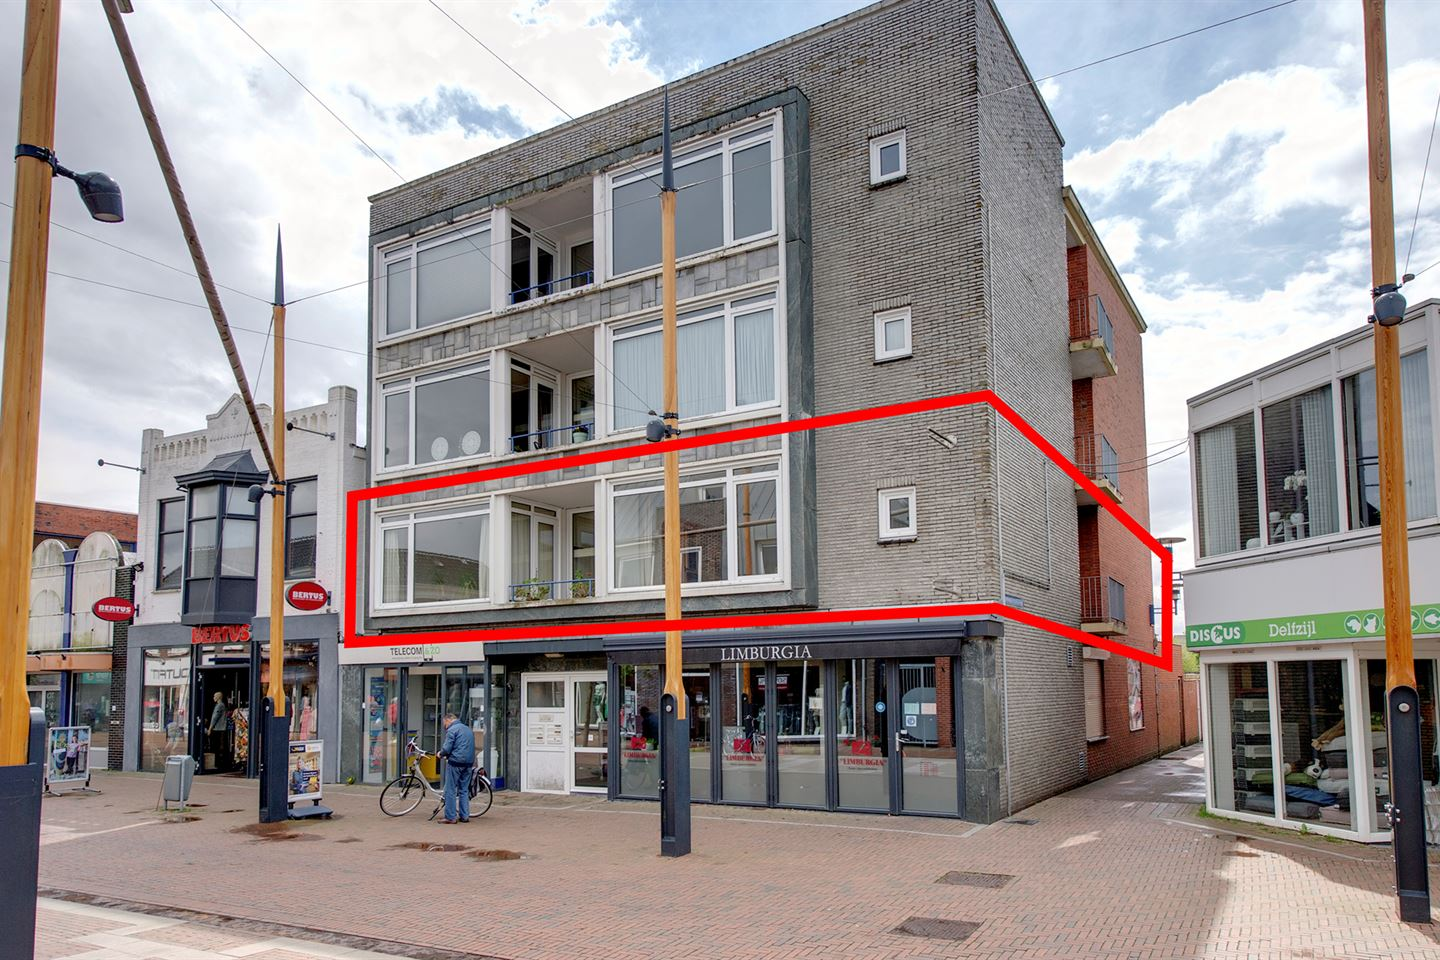 View photo 1 of Landstraat 50 a